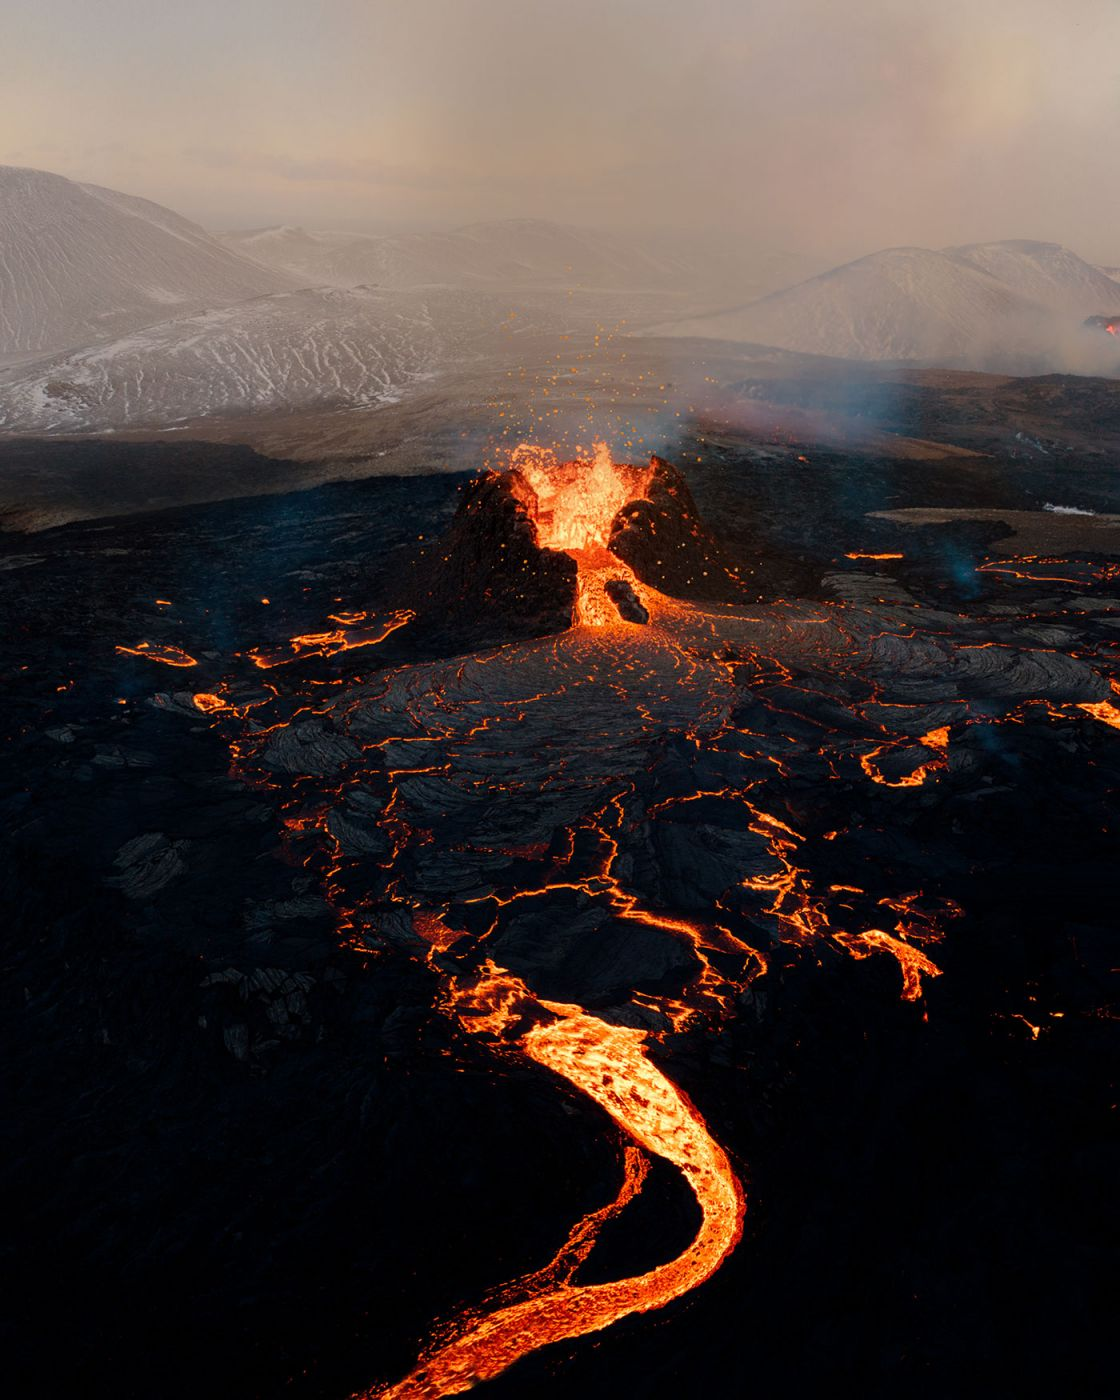 Stunning Photography from an erupting Volcano in Iceland